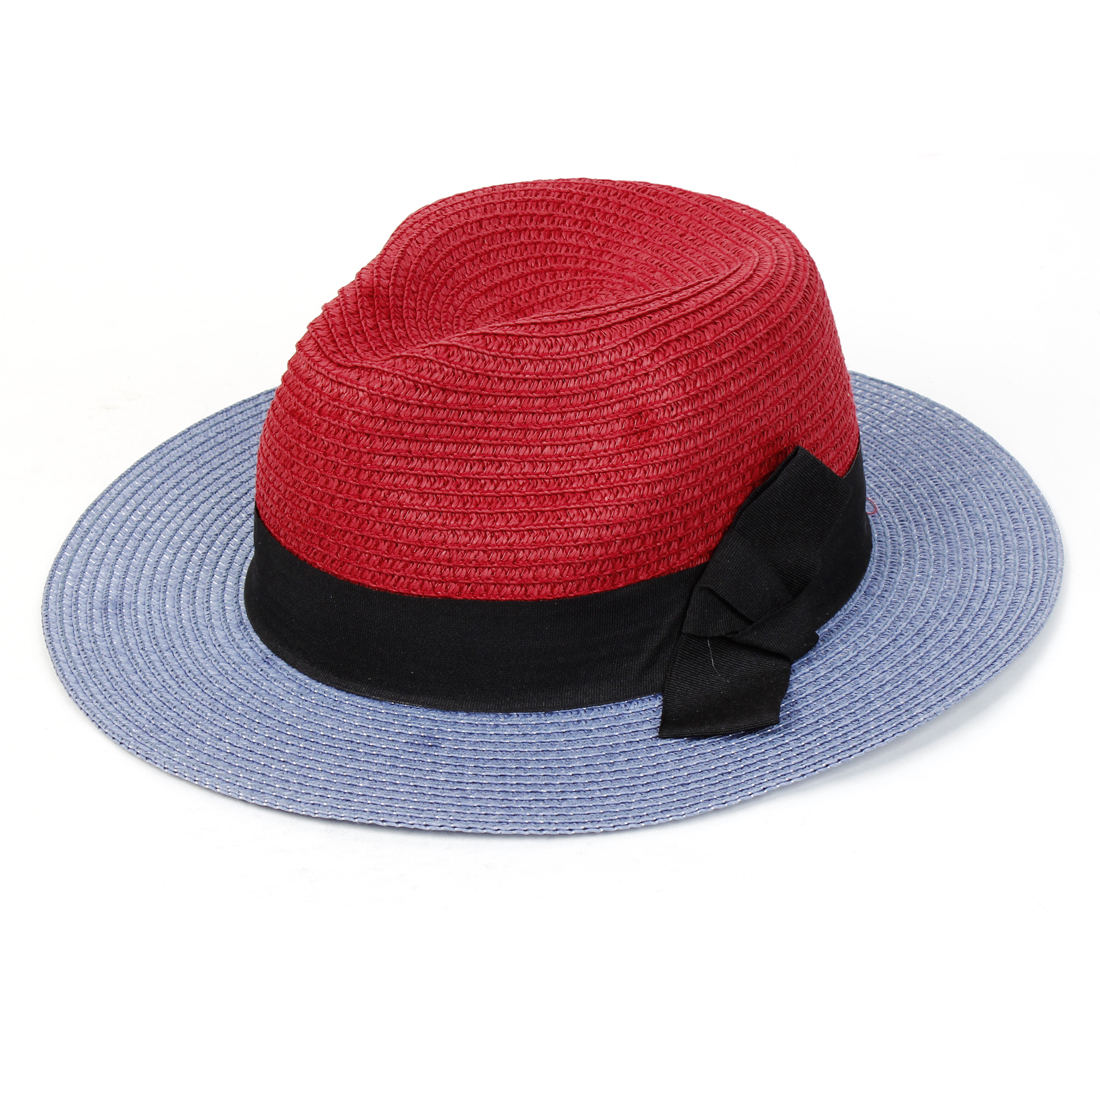 Unique Bargains Woman Camping Walking Red Nylon Woven Bow Tie Straw Beach Hat